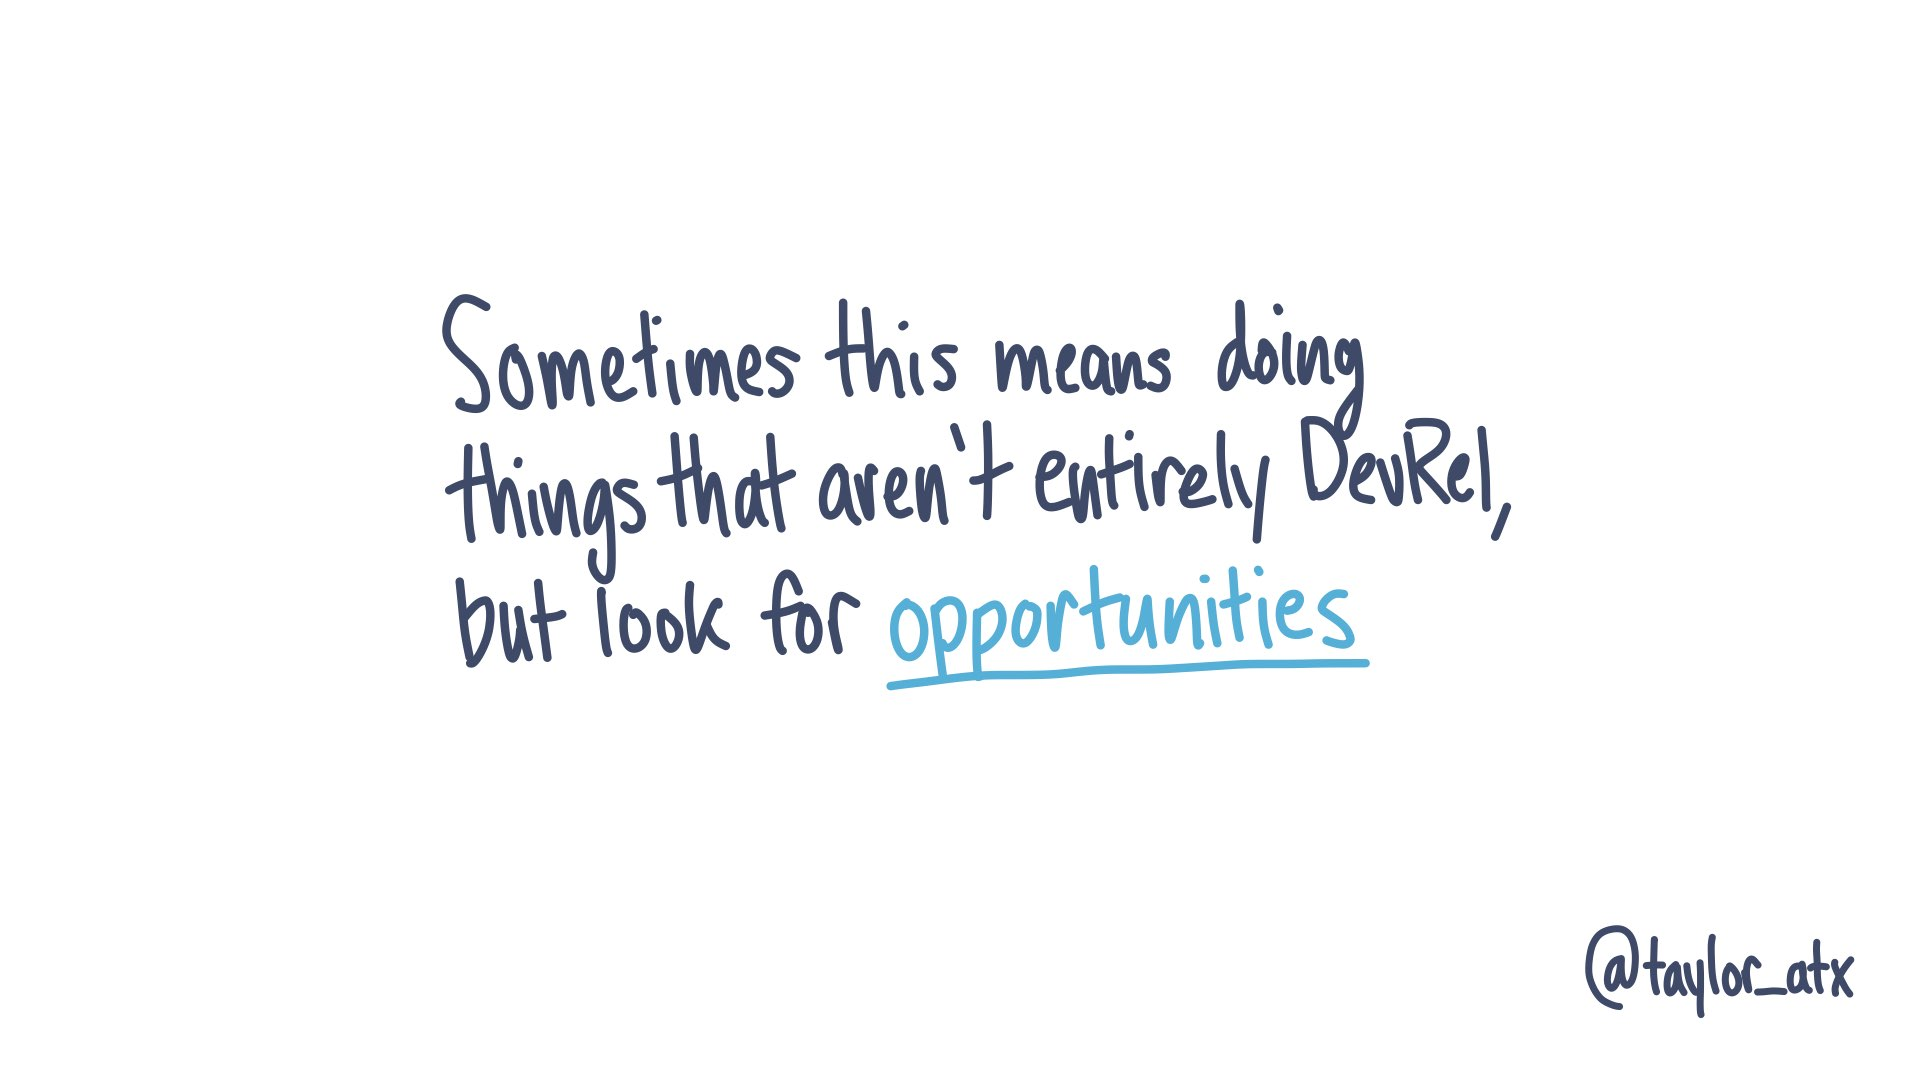 Sometimes this means doing things that aren't entirely DevRel, but look for opportunities